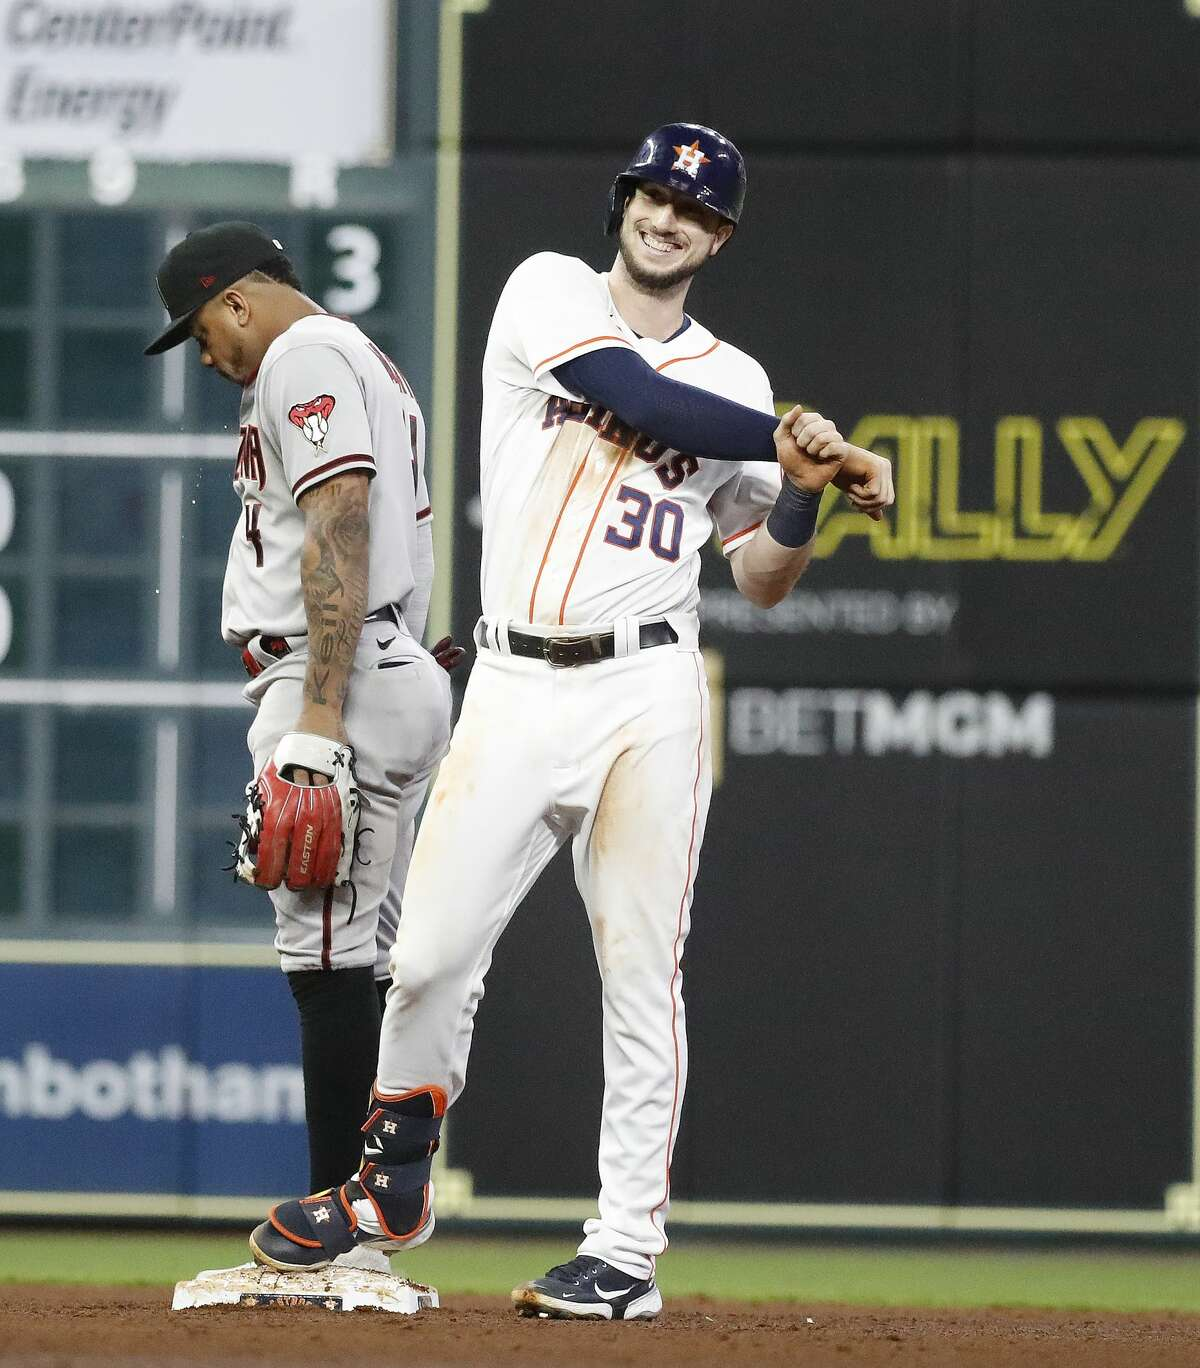 Houston Astros Kyle Tucker (30) smiles on second base after his double off of Arizona Diamondbacks starting pitcher Humberto Castellanos during the sixth inning of an MLB baseball game at Minute Maid Park, Saturday, September 18, 2021, in Houston.